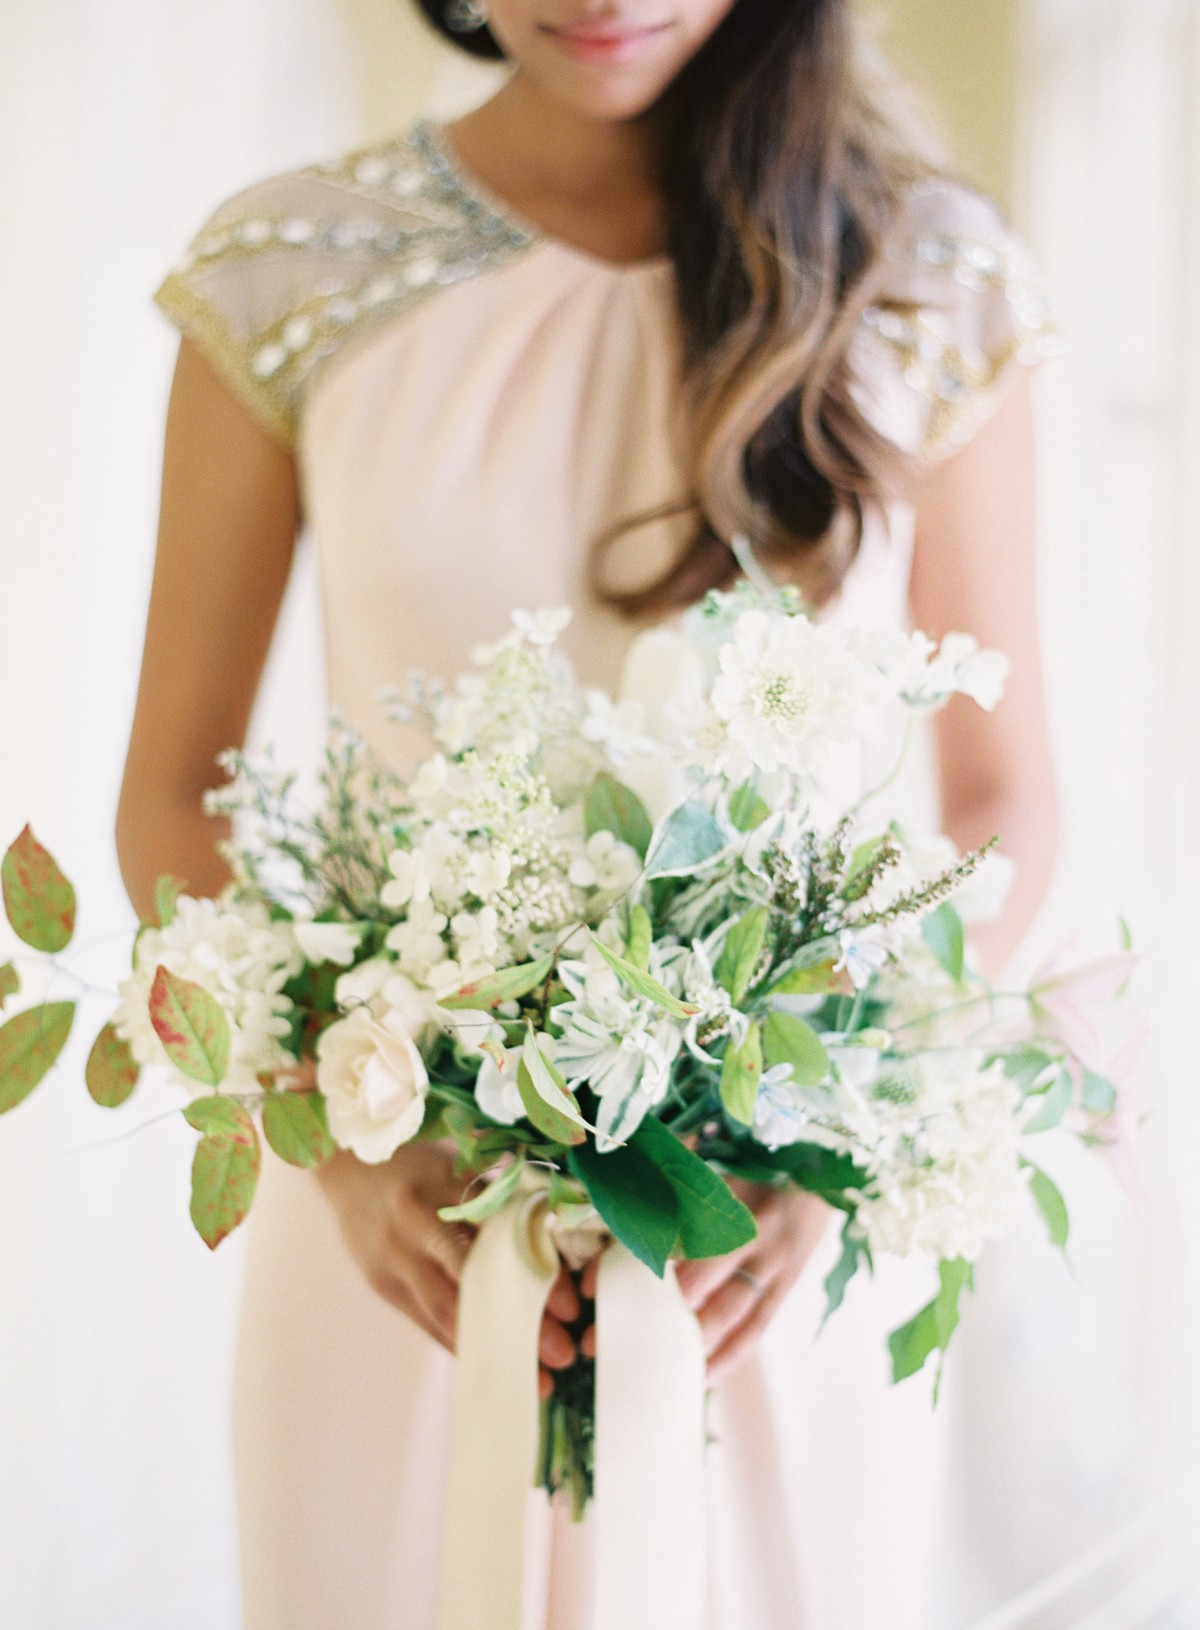 Loose White And Green Bridal Bouquet 2 Elizabeth Anne Designs The